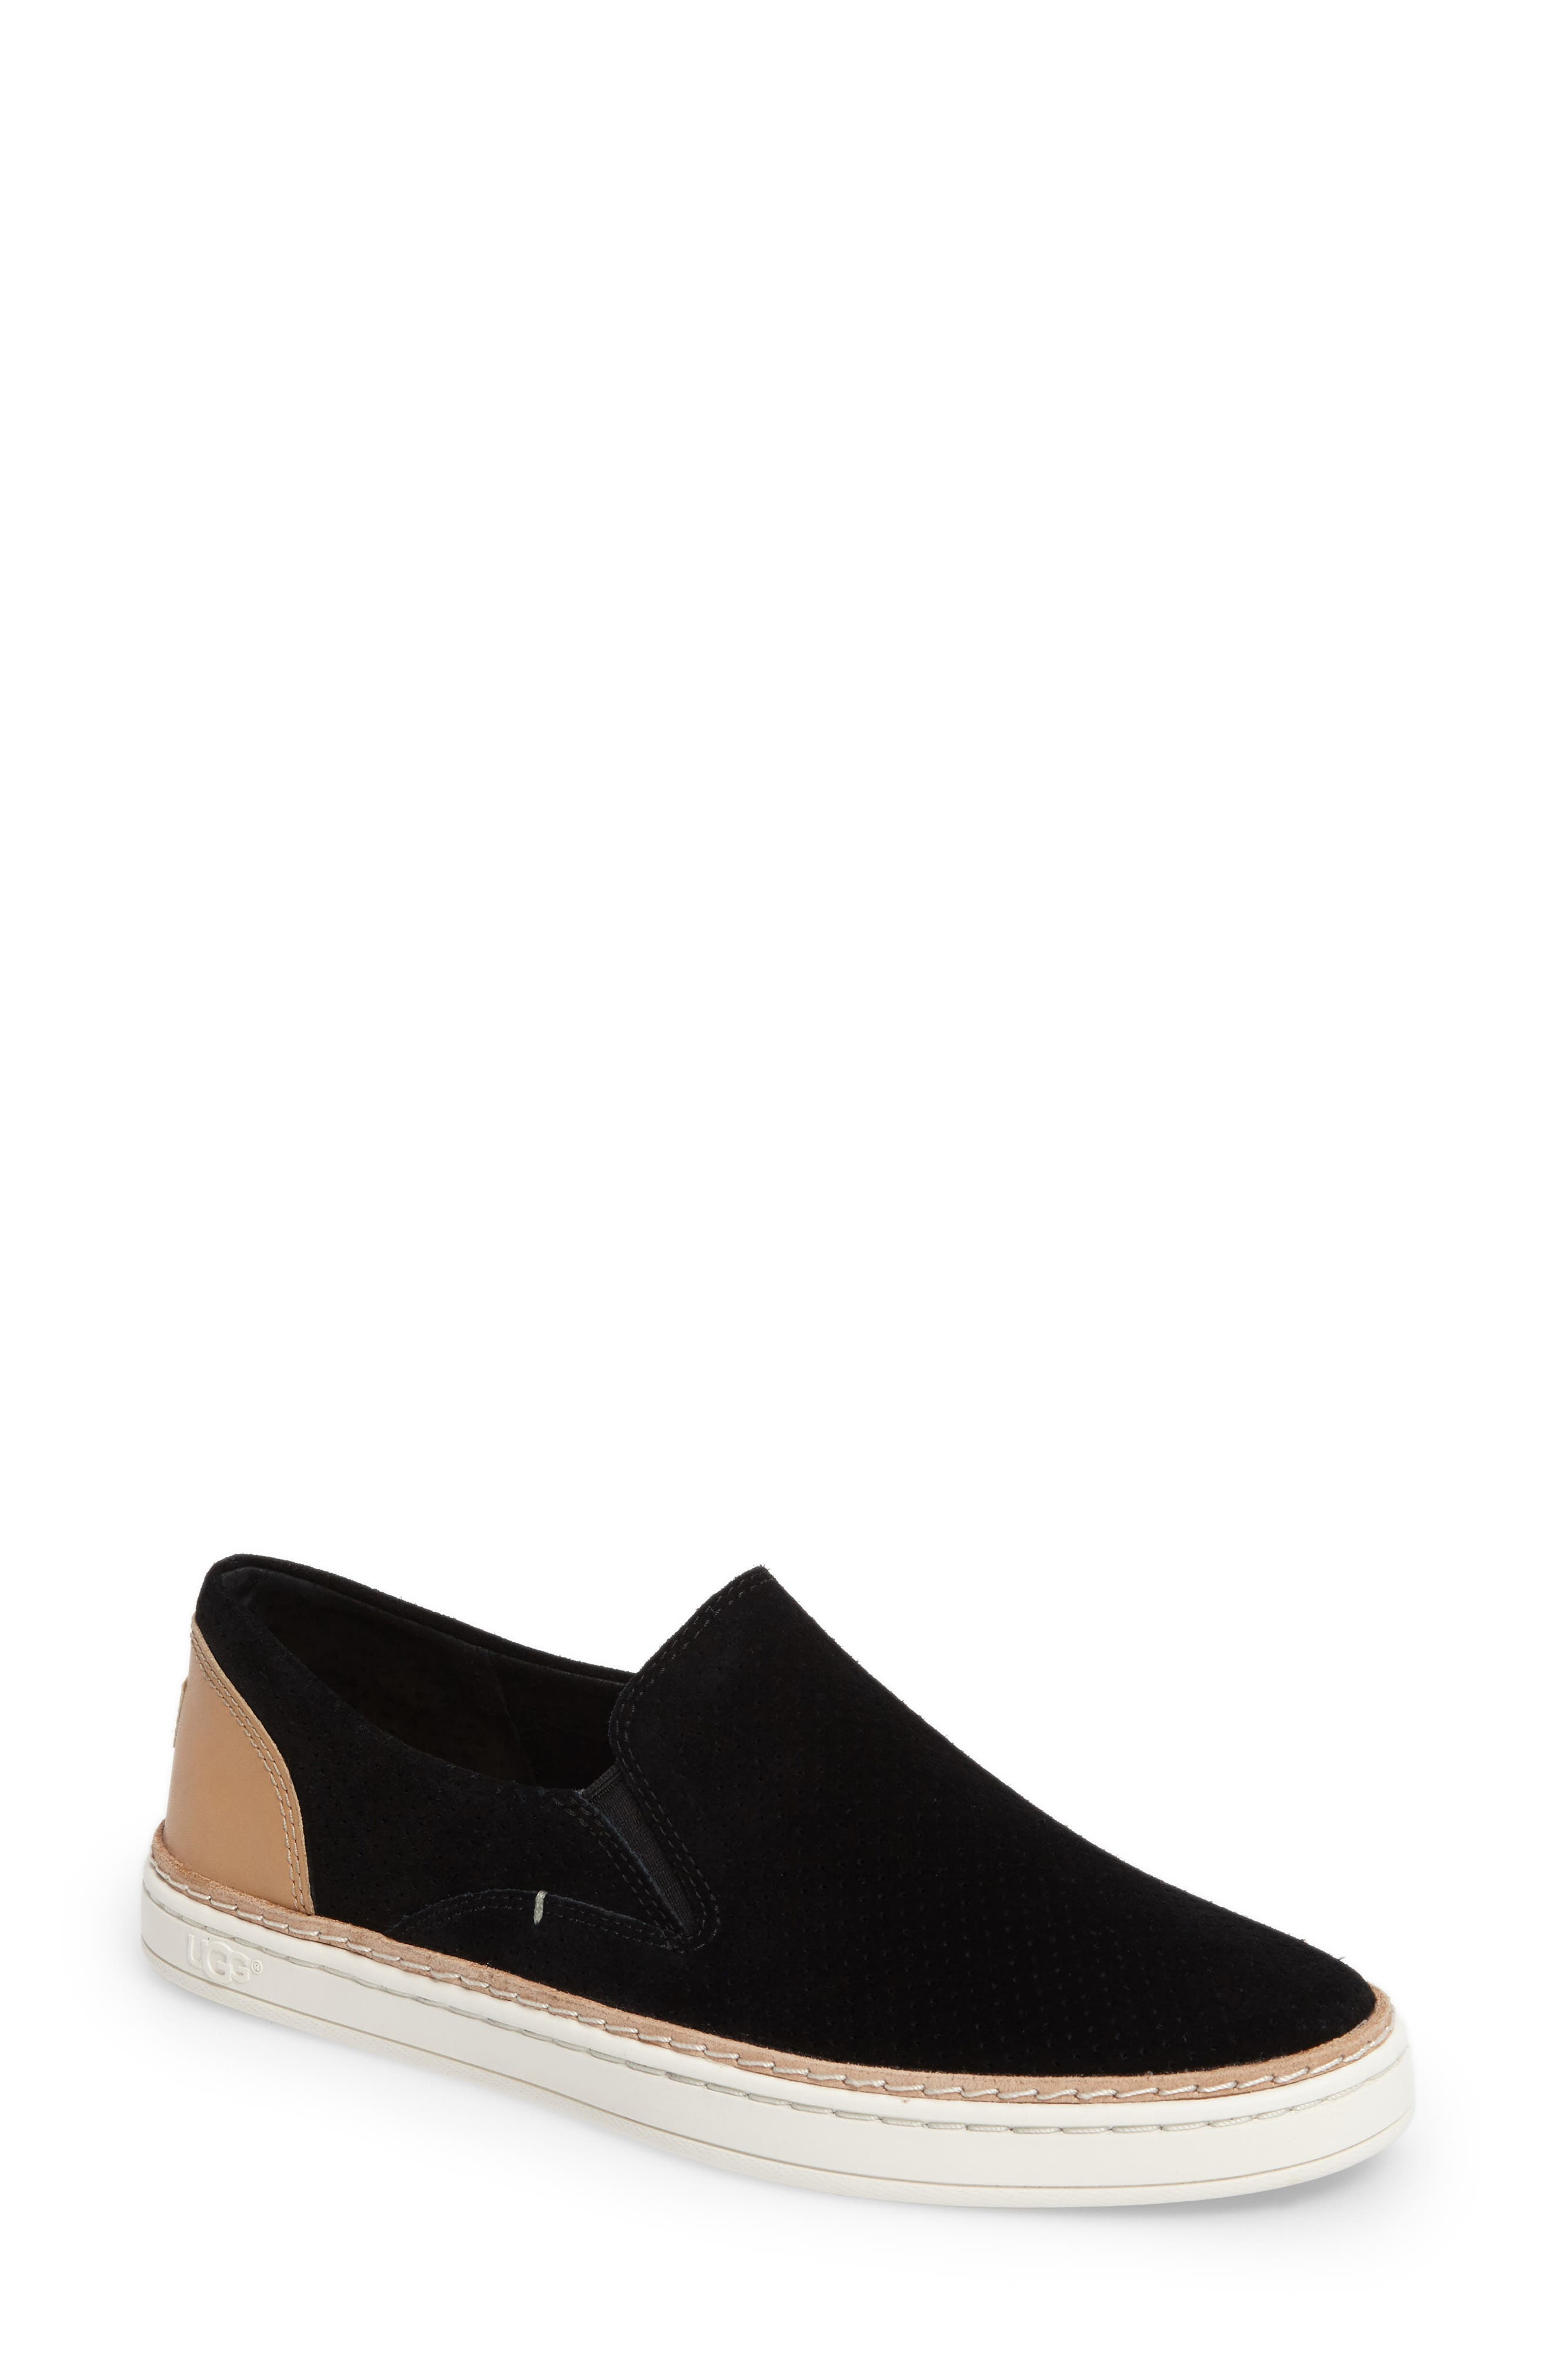 Adley Slip-On Sneaker,                             Main thumbnail 1, color,                             001